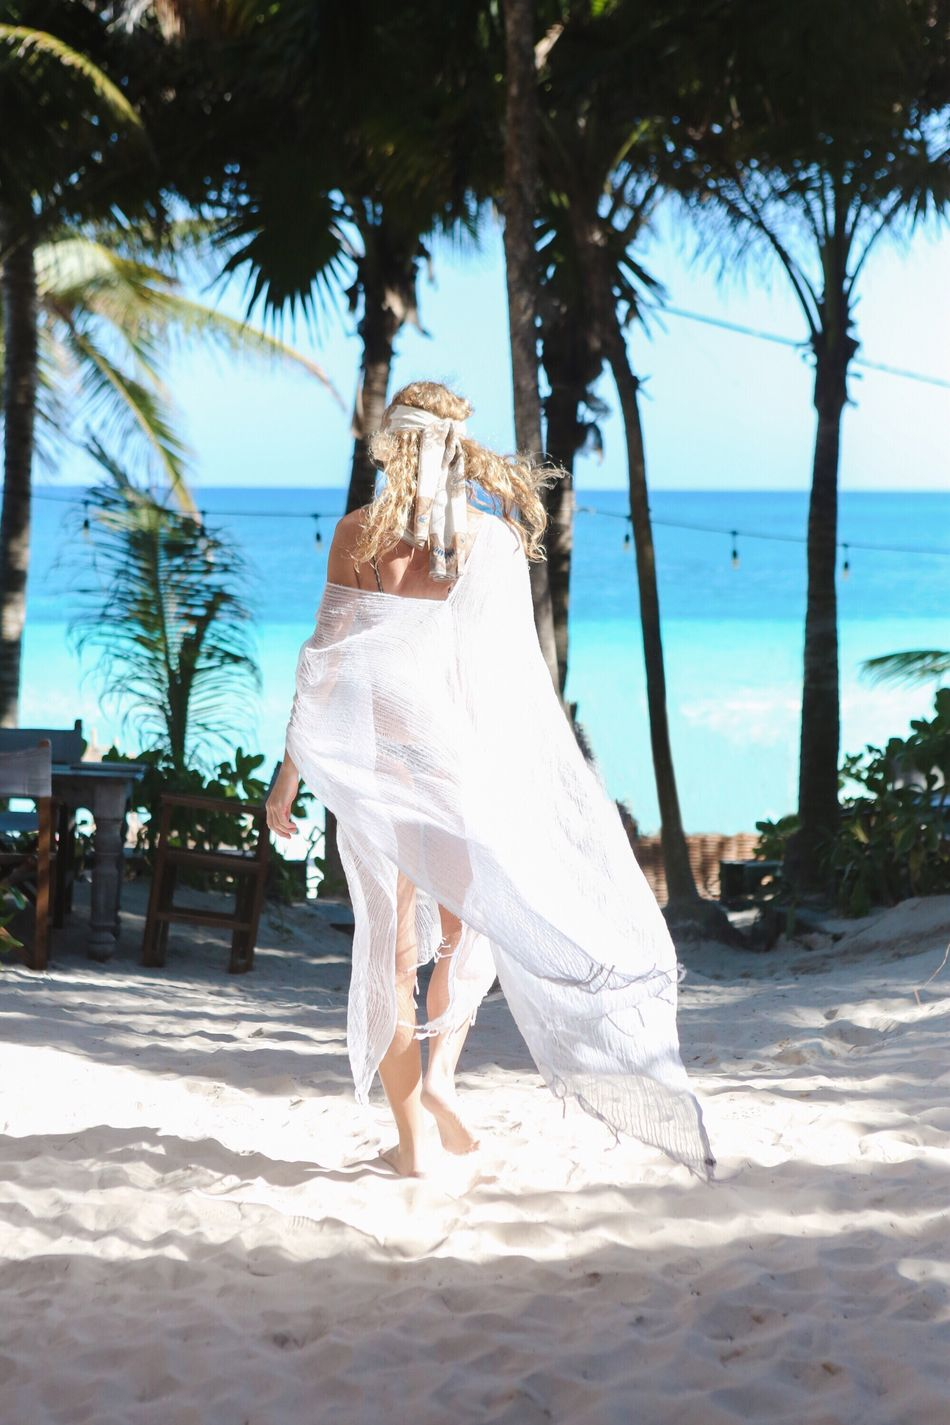 Beach Sea Sand Full Length Horizon Over Water One Person Lifestyles Outdoors Women Vacation Palm Tree Mexico